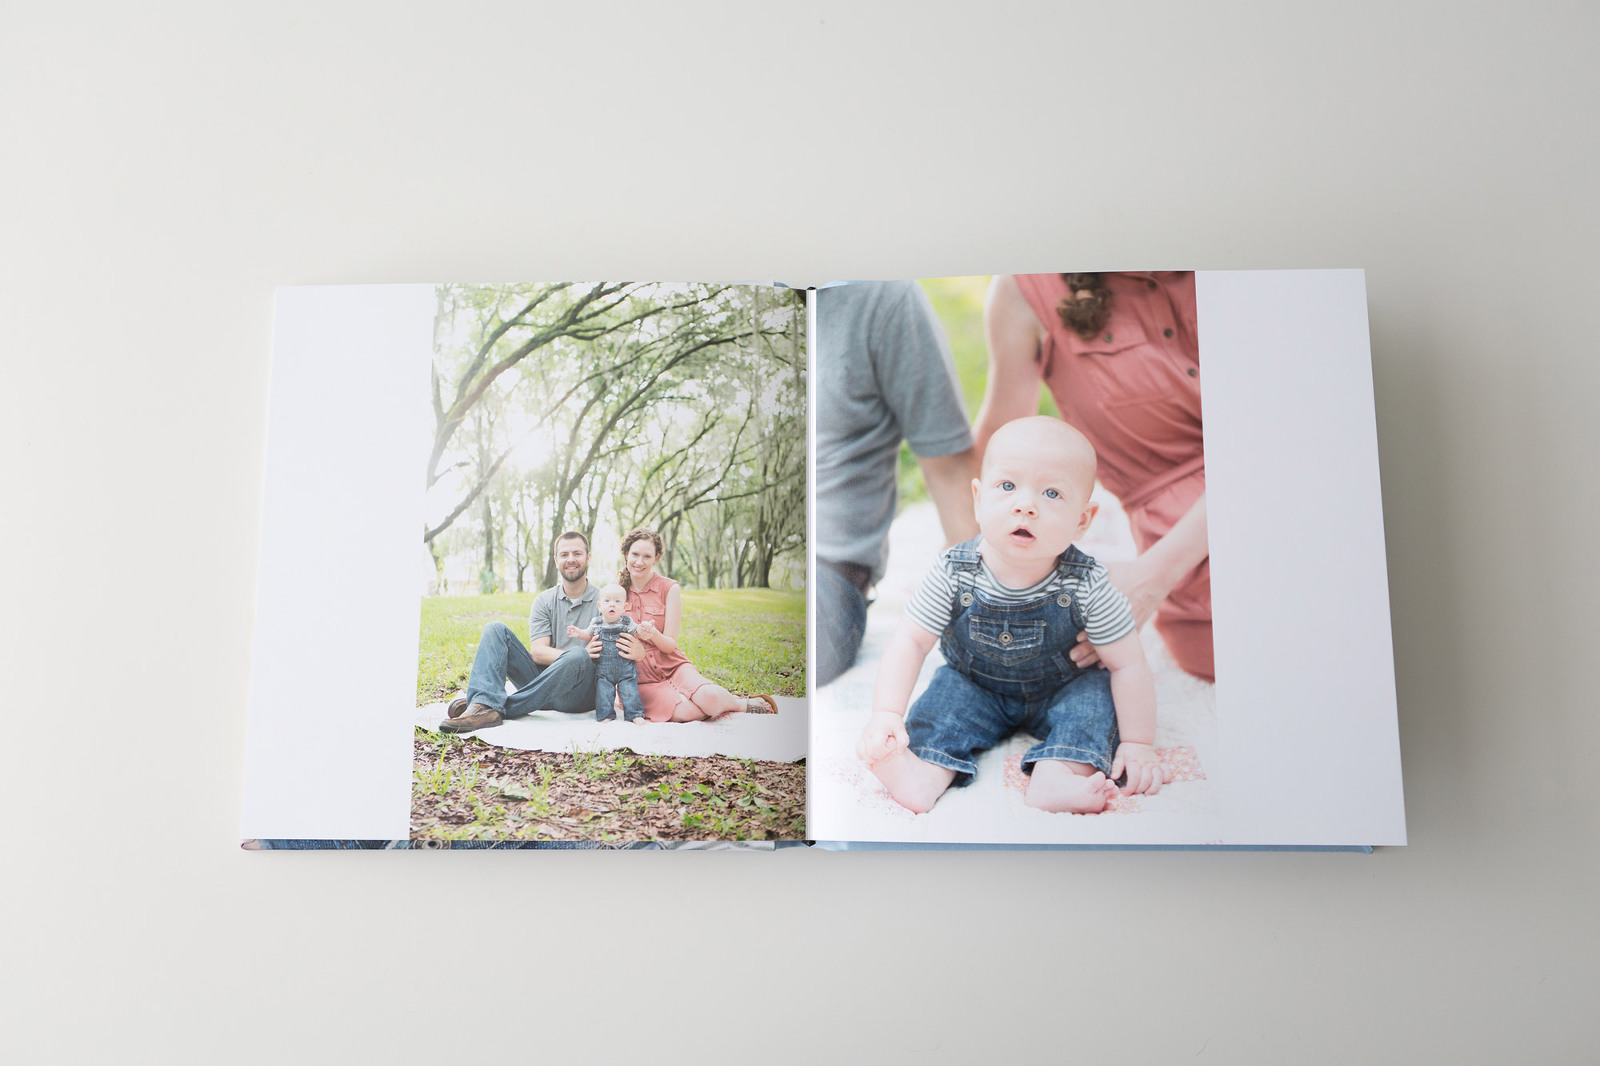 photographer provides family with session album